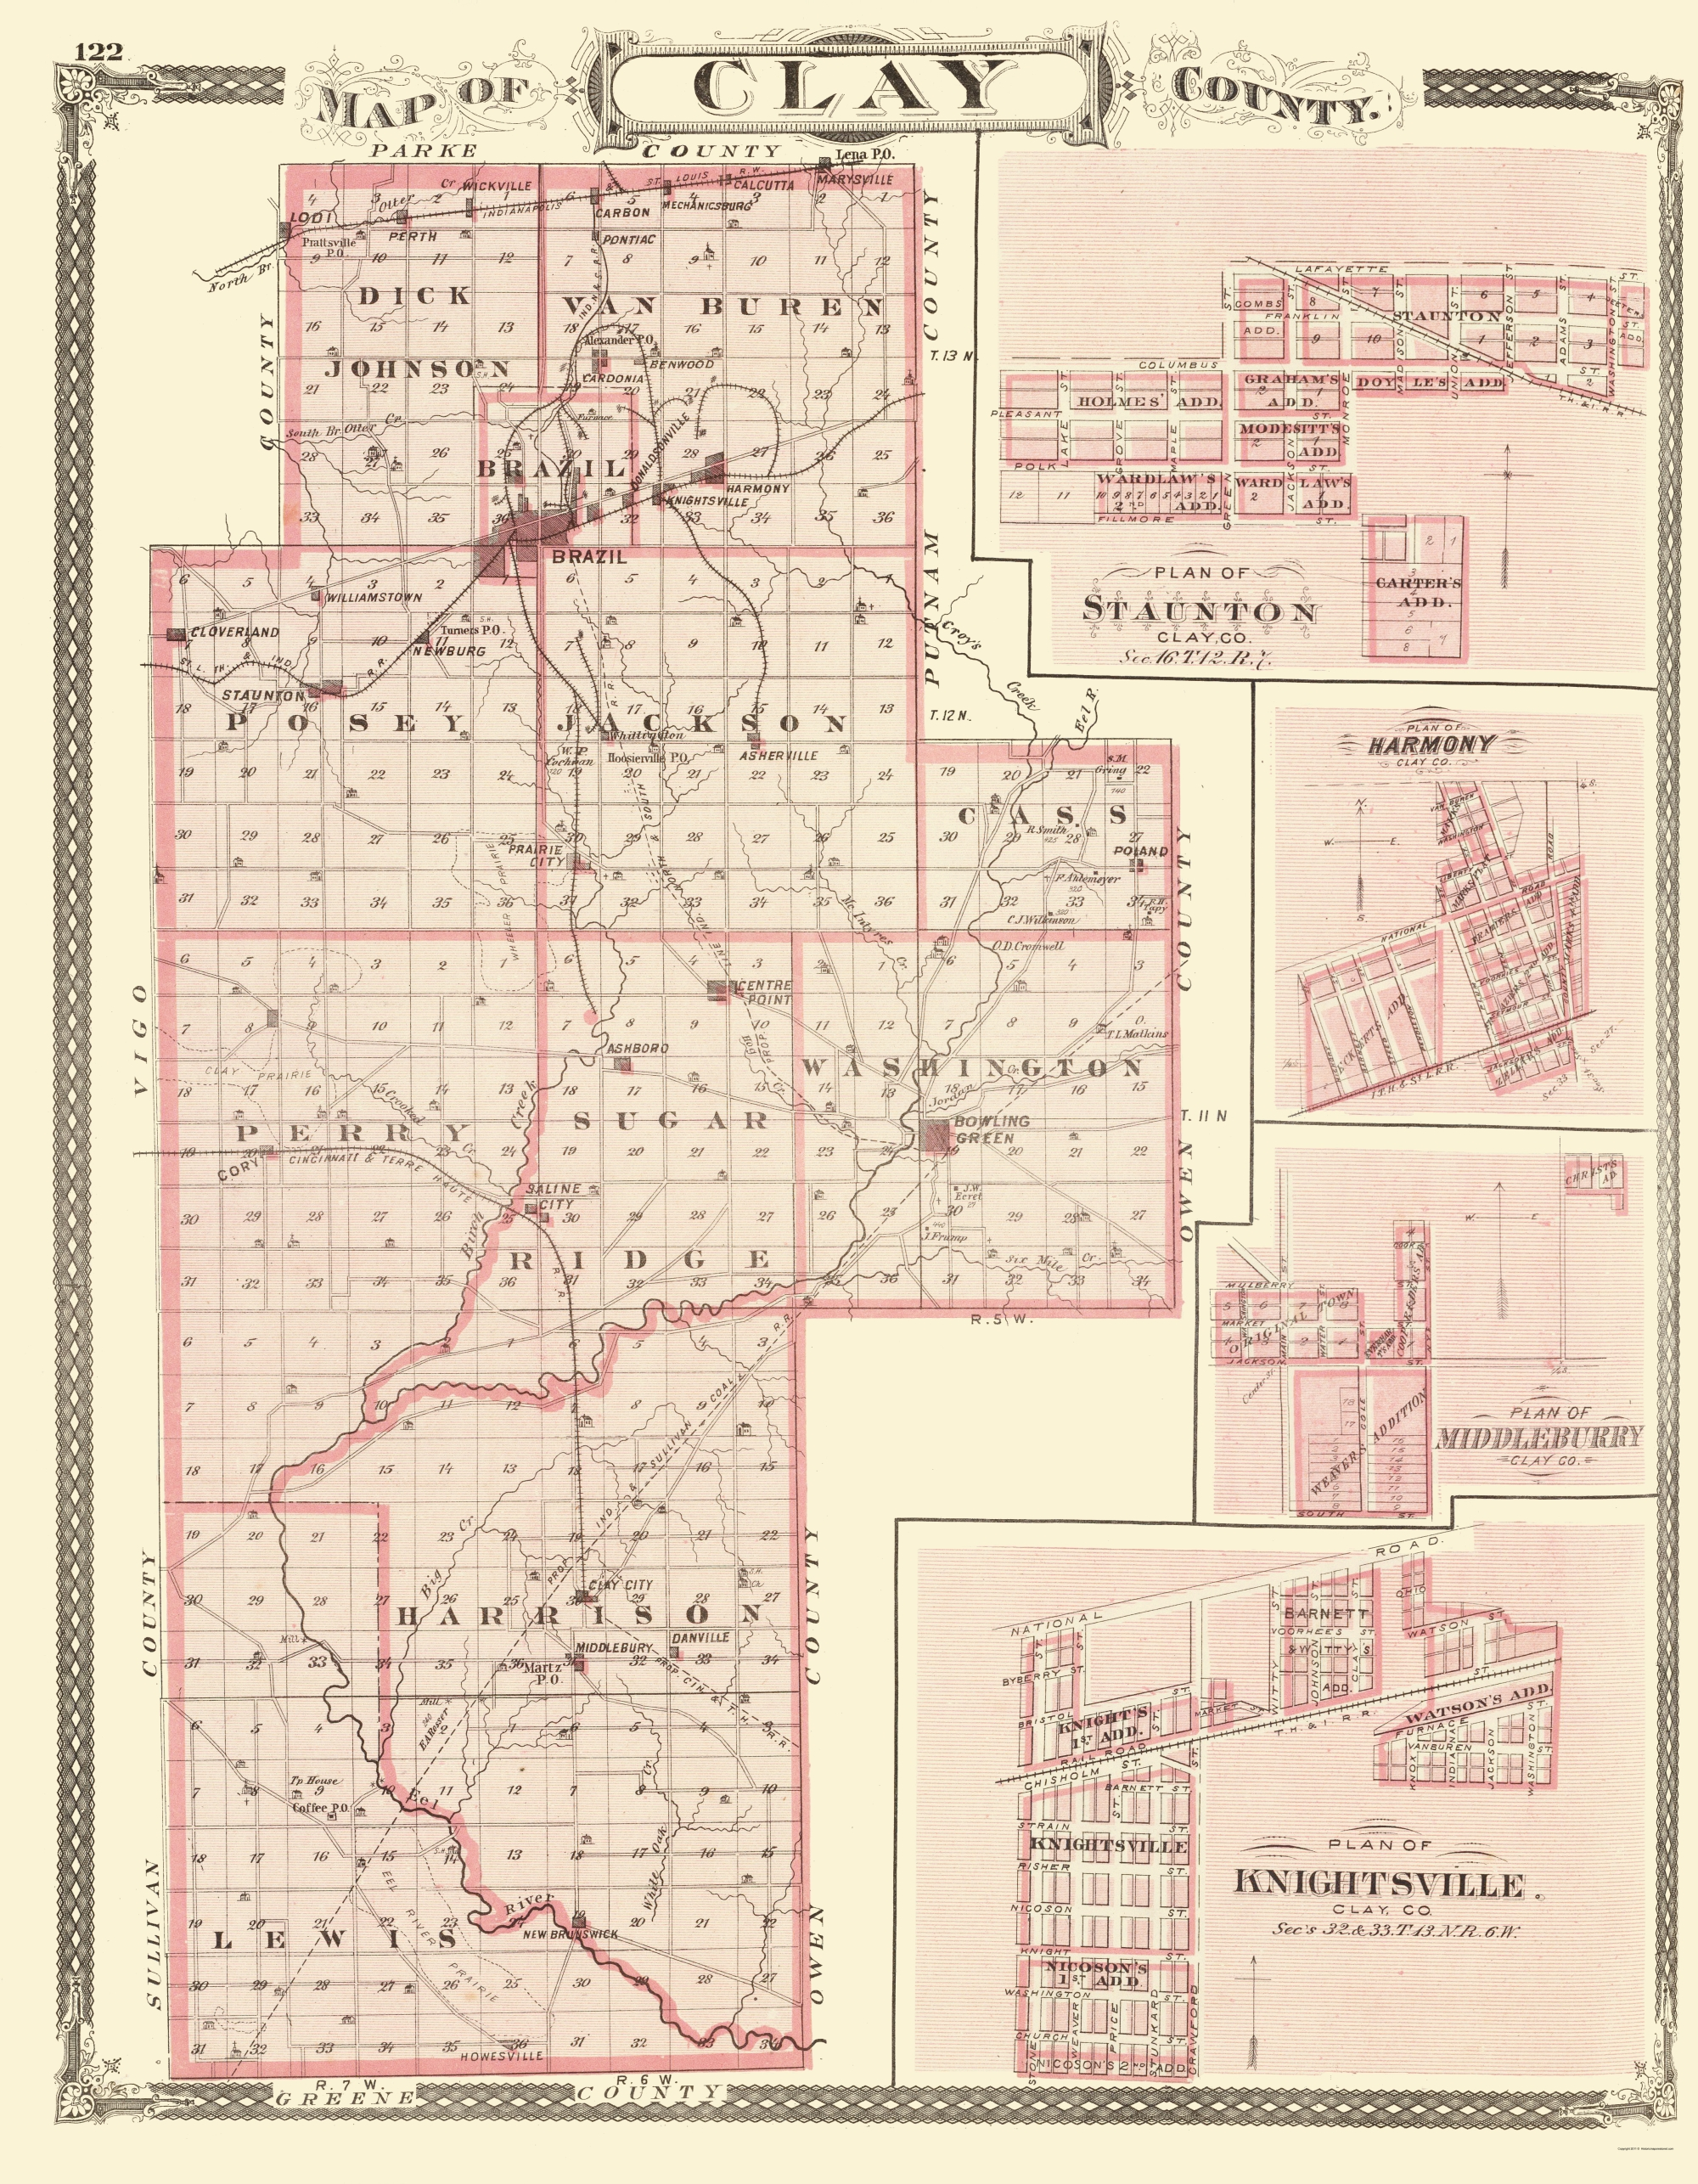 Indiana clay county harmony - Also Shown Are Insets Of The Towns Of Stunton Harmony Middleburry And Knightsville On The Right Some Landmarks Of Interest Stunton Indiana United